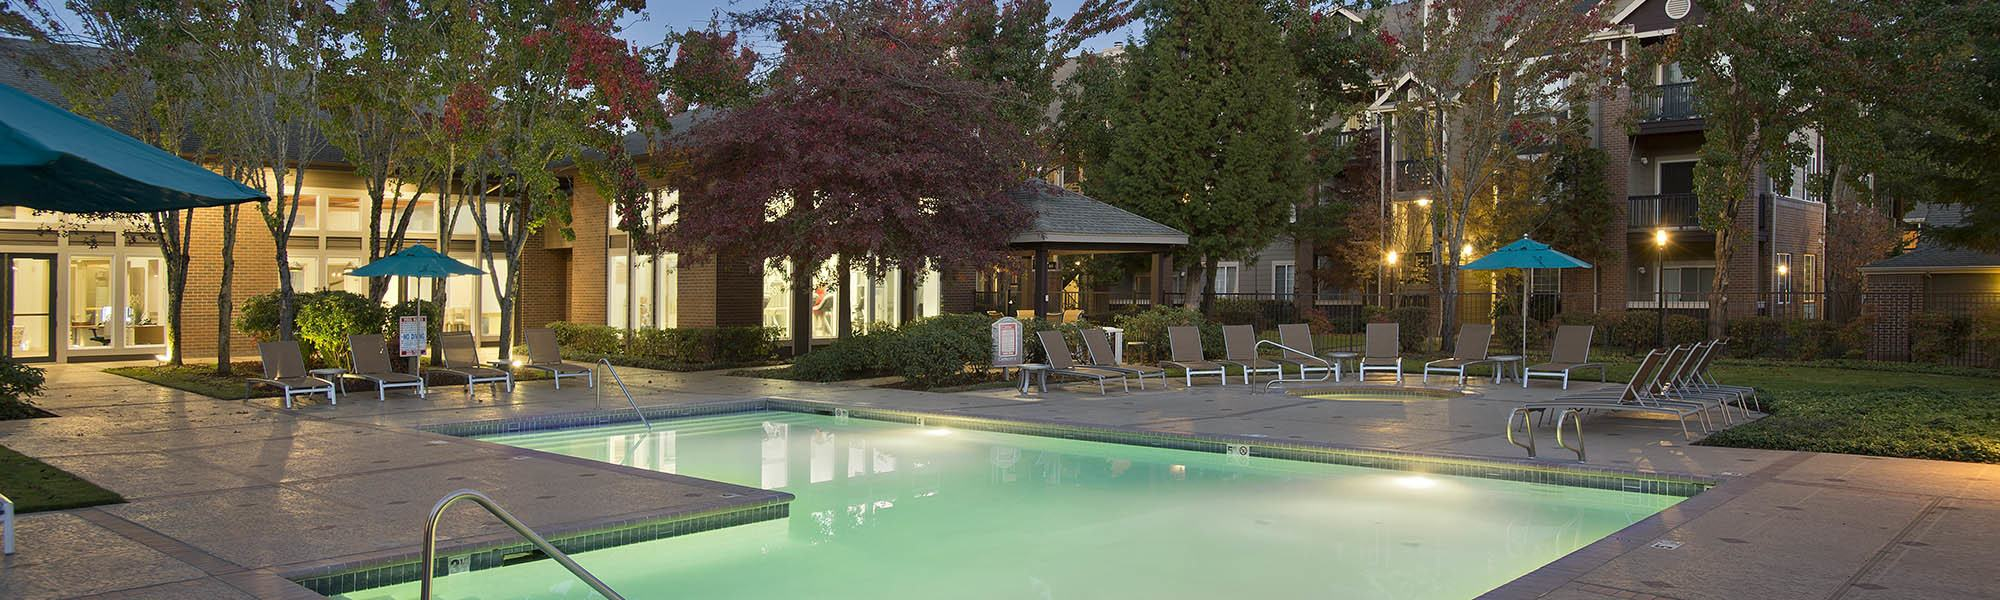 View photos of our luxurious property at Cortland Village Apartment Homes in Hillsboro, OR